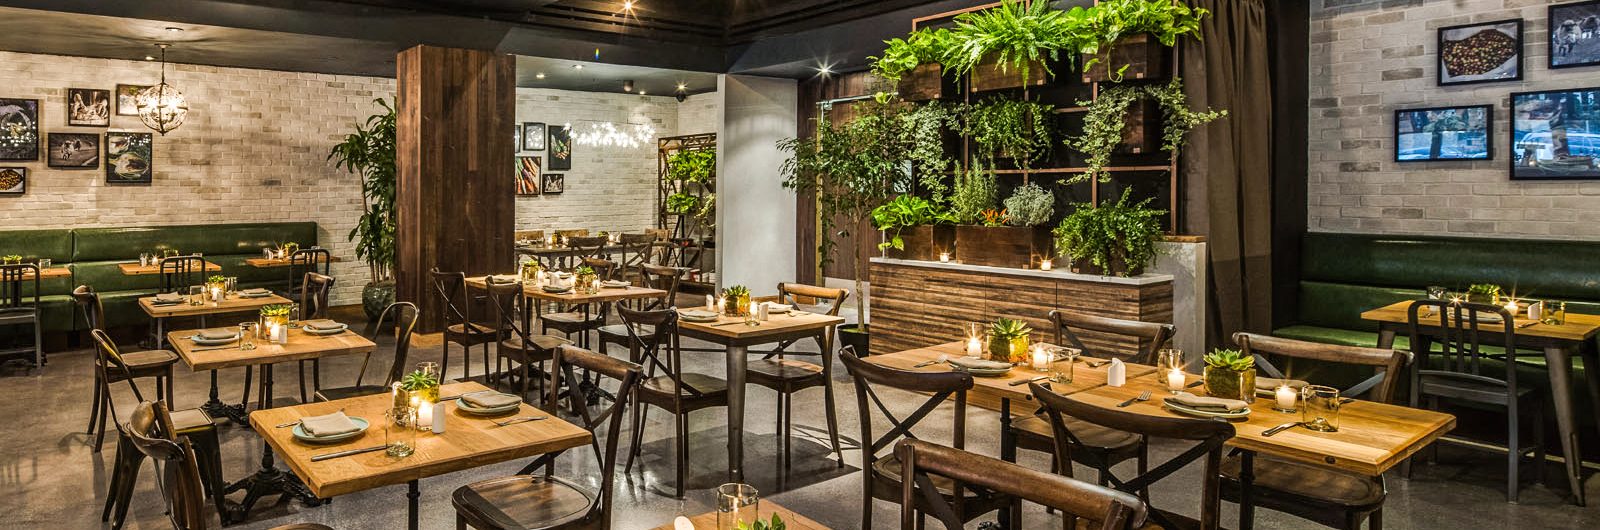 Eden Local - New York | A Greenery-Filled Oasis in Midtown